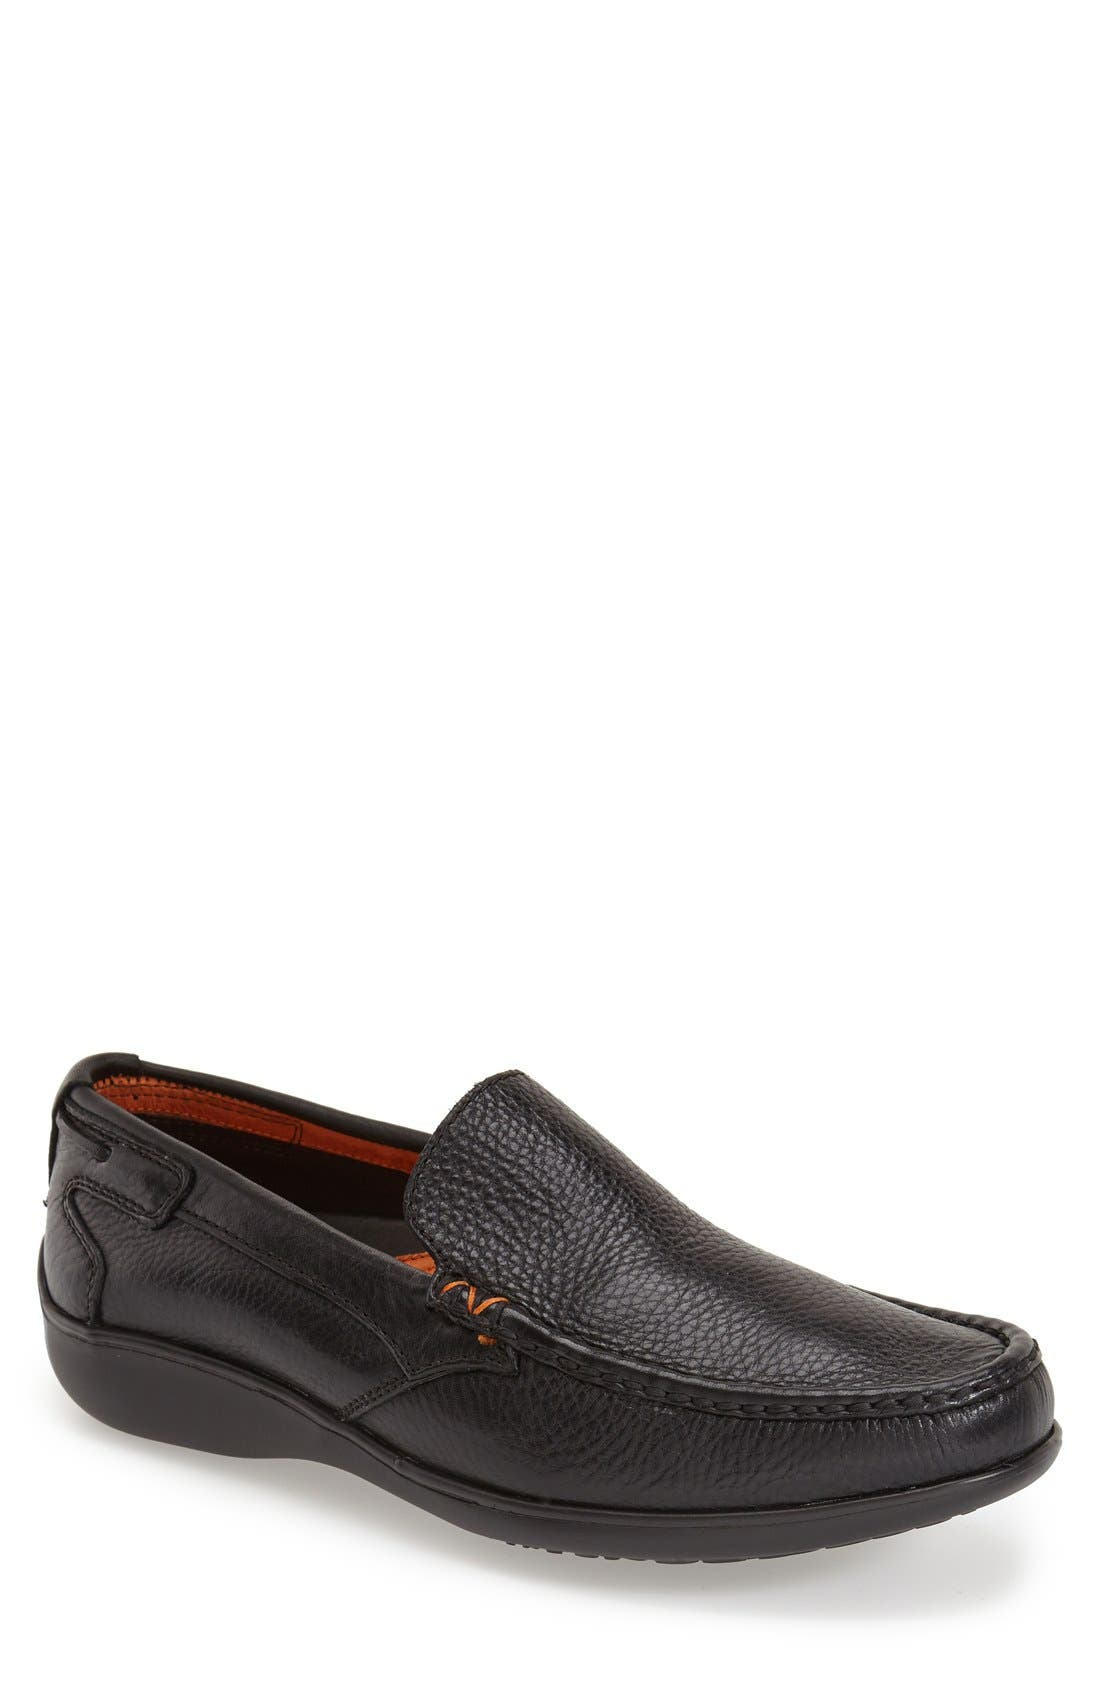 'Sterling' Loafer,                             Main thumbnail 1, color,                             Black